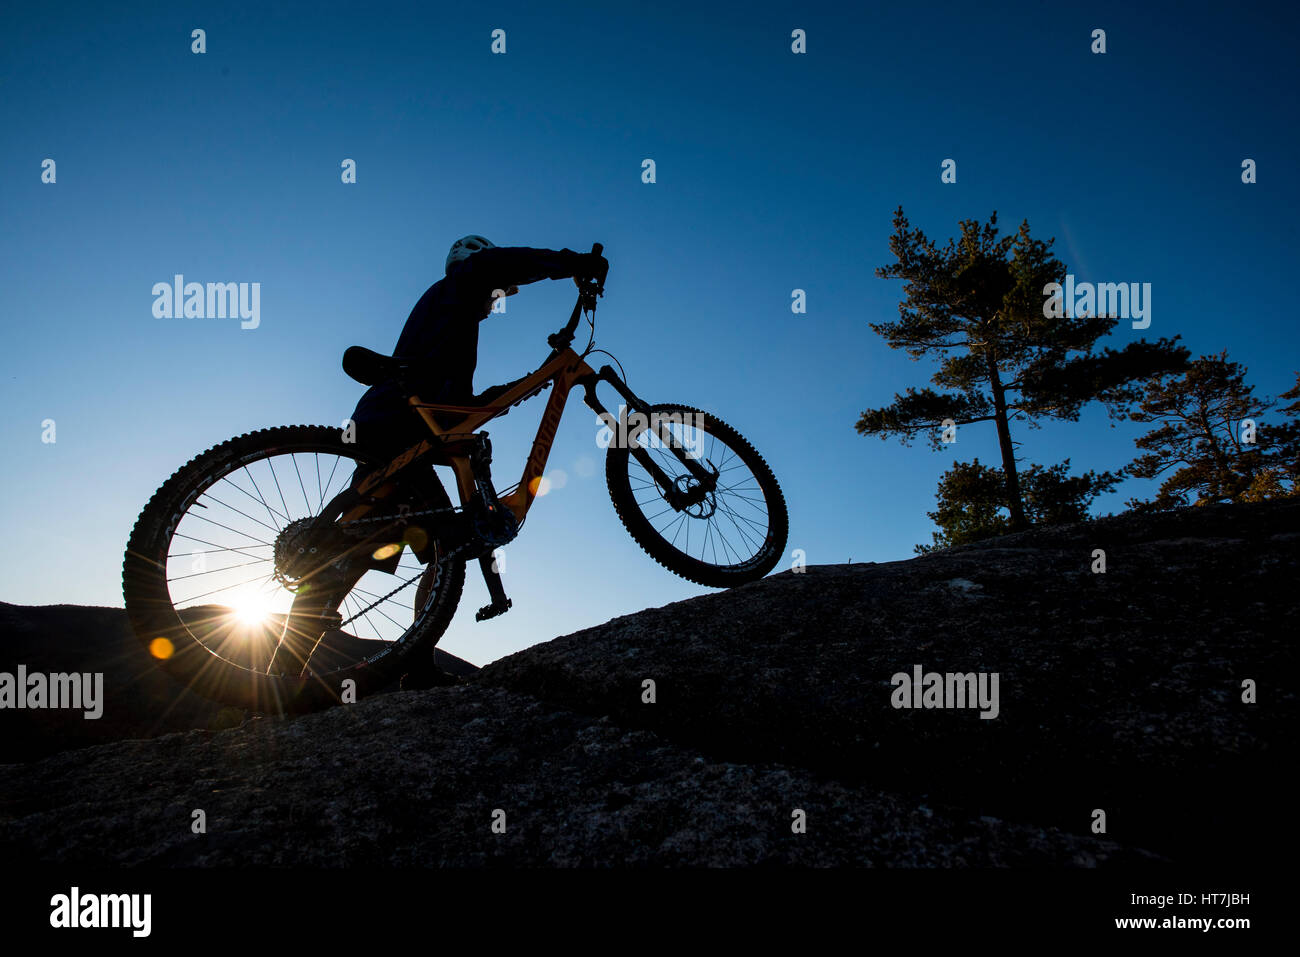 Silhouette Of Alex Leich With Mountain Bike On The Bare Granite Slabs In North Conway, New Hampshire - Stock Image